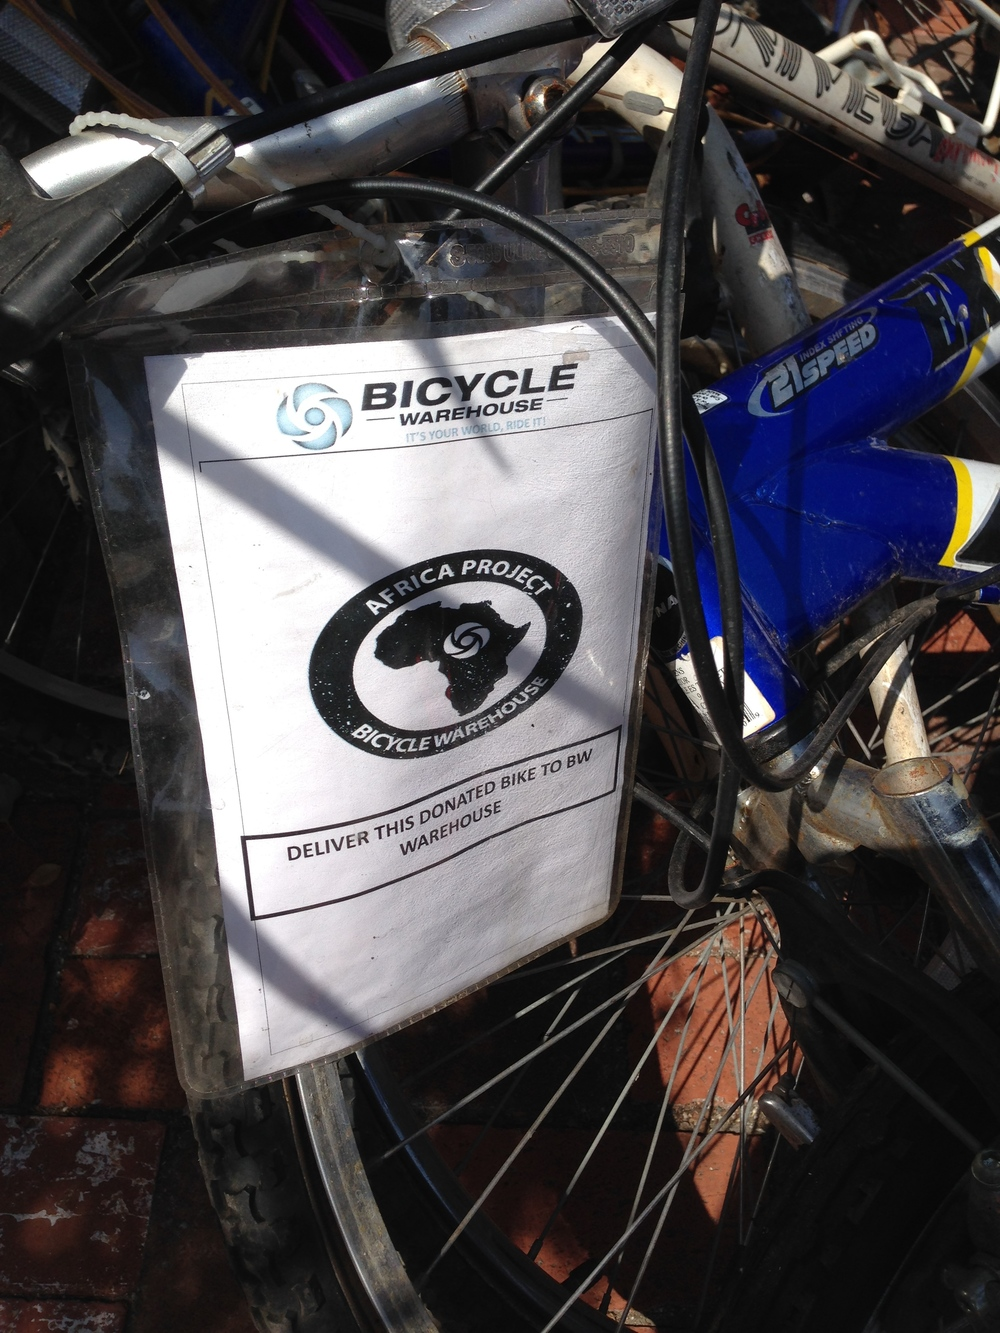 All Bicycle Warehouse stores are now San Diego drop off points for bike donations.